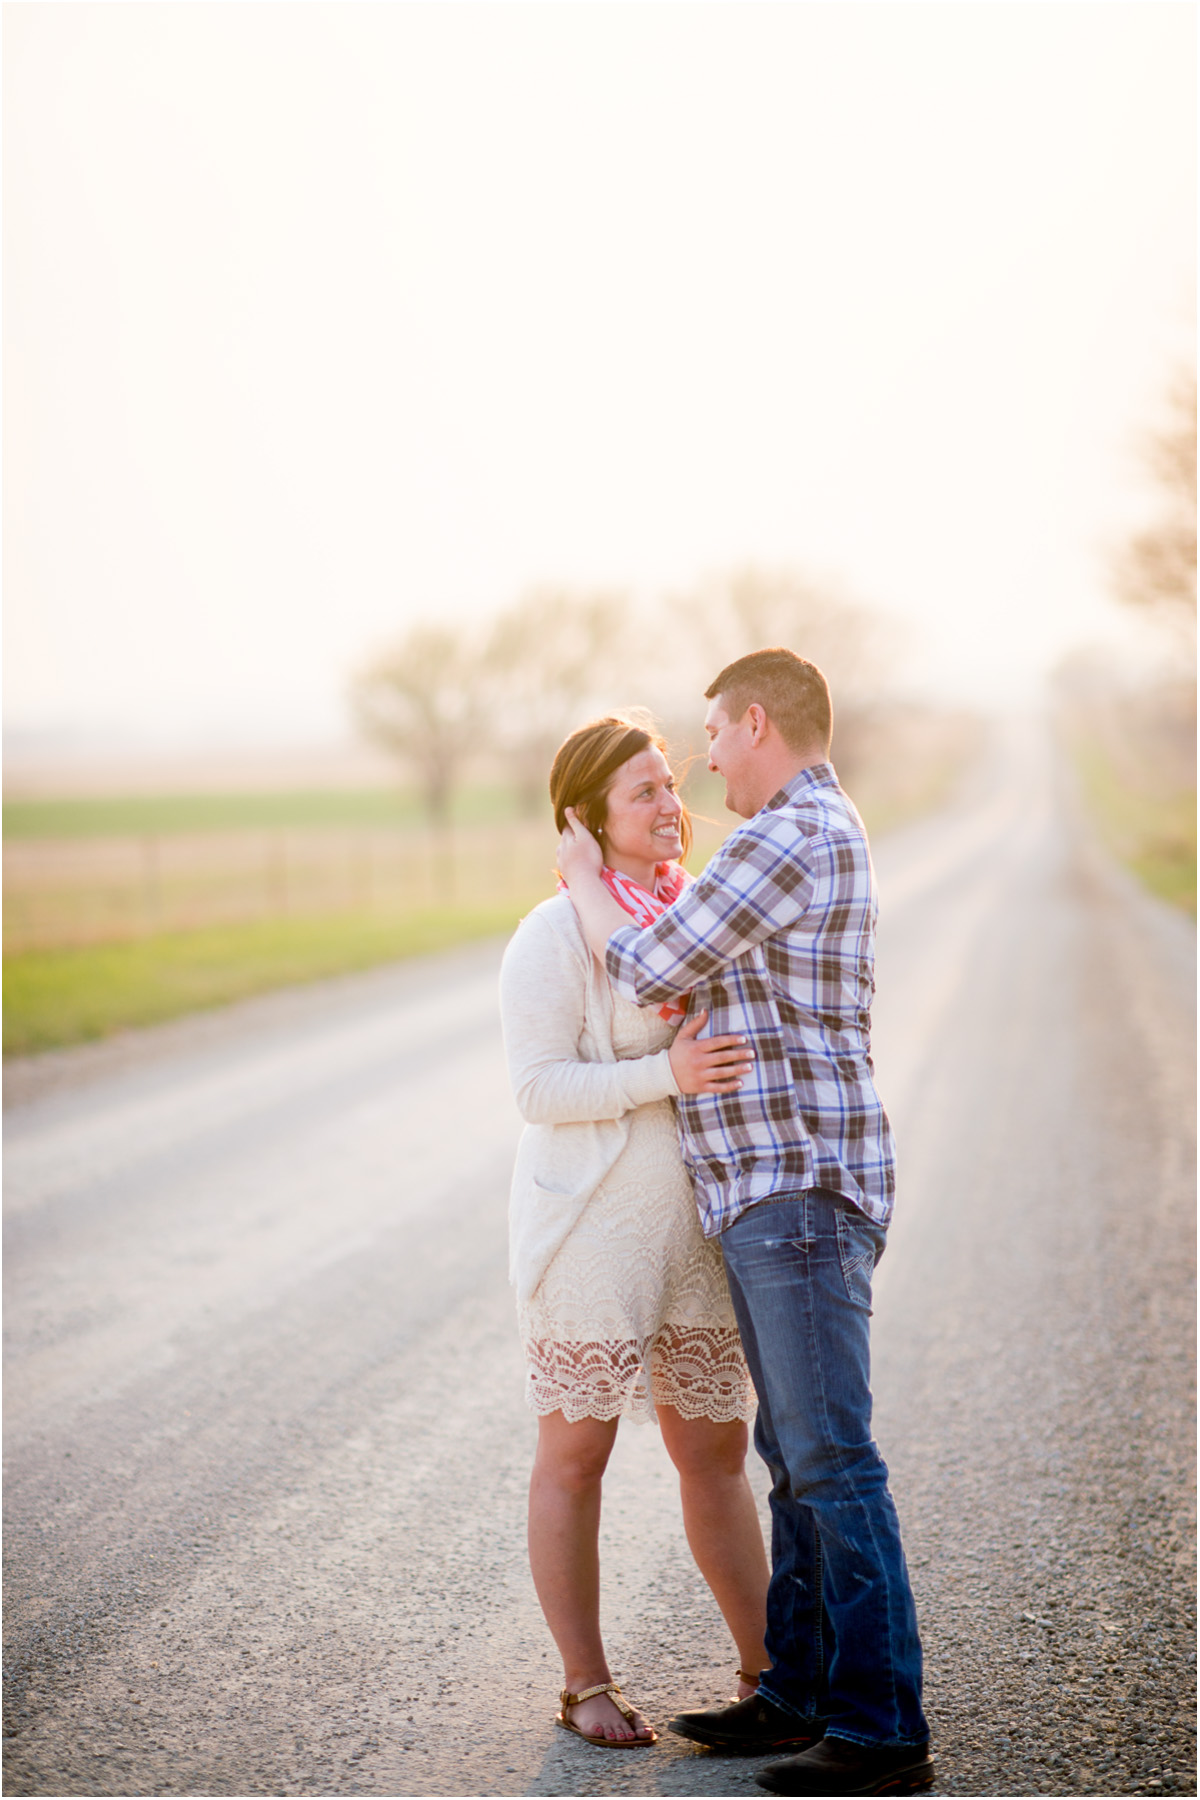 Country backroad engagement session 5